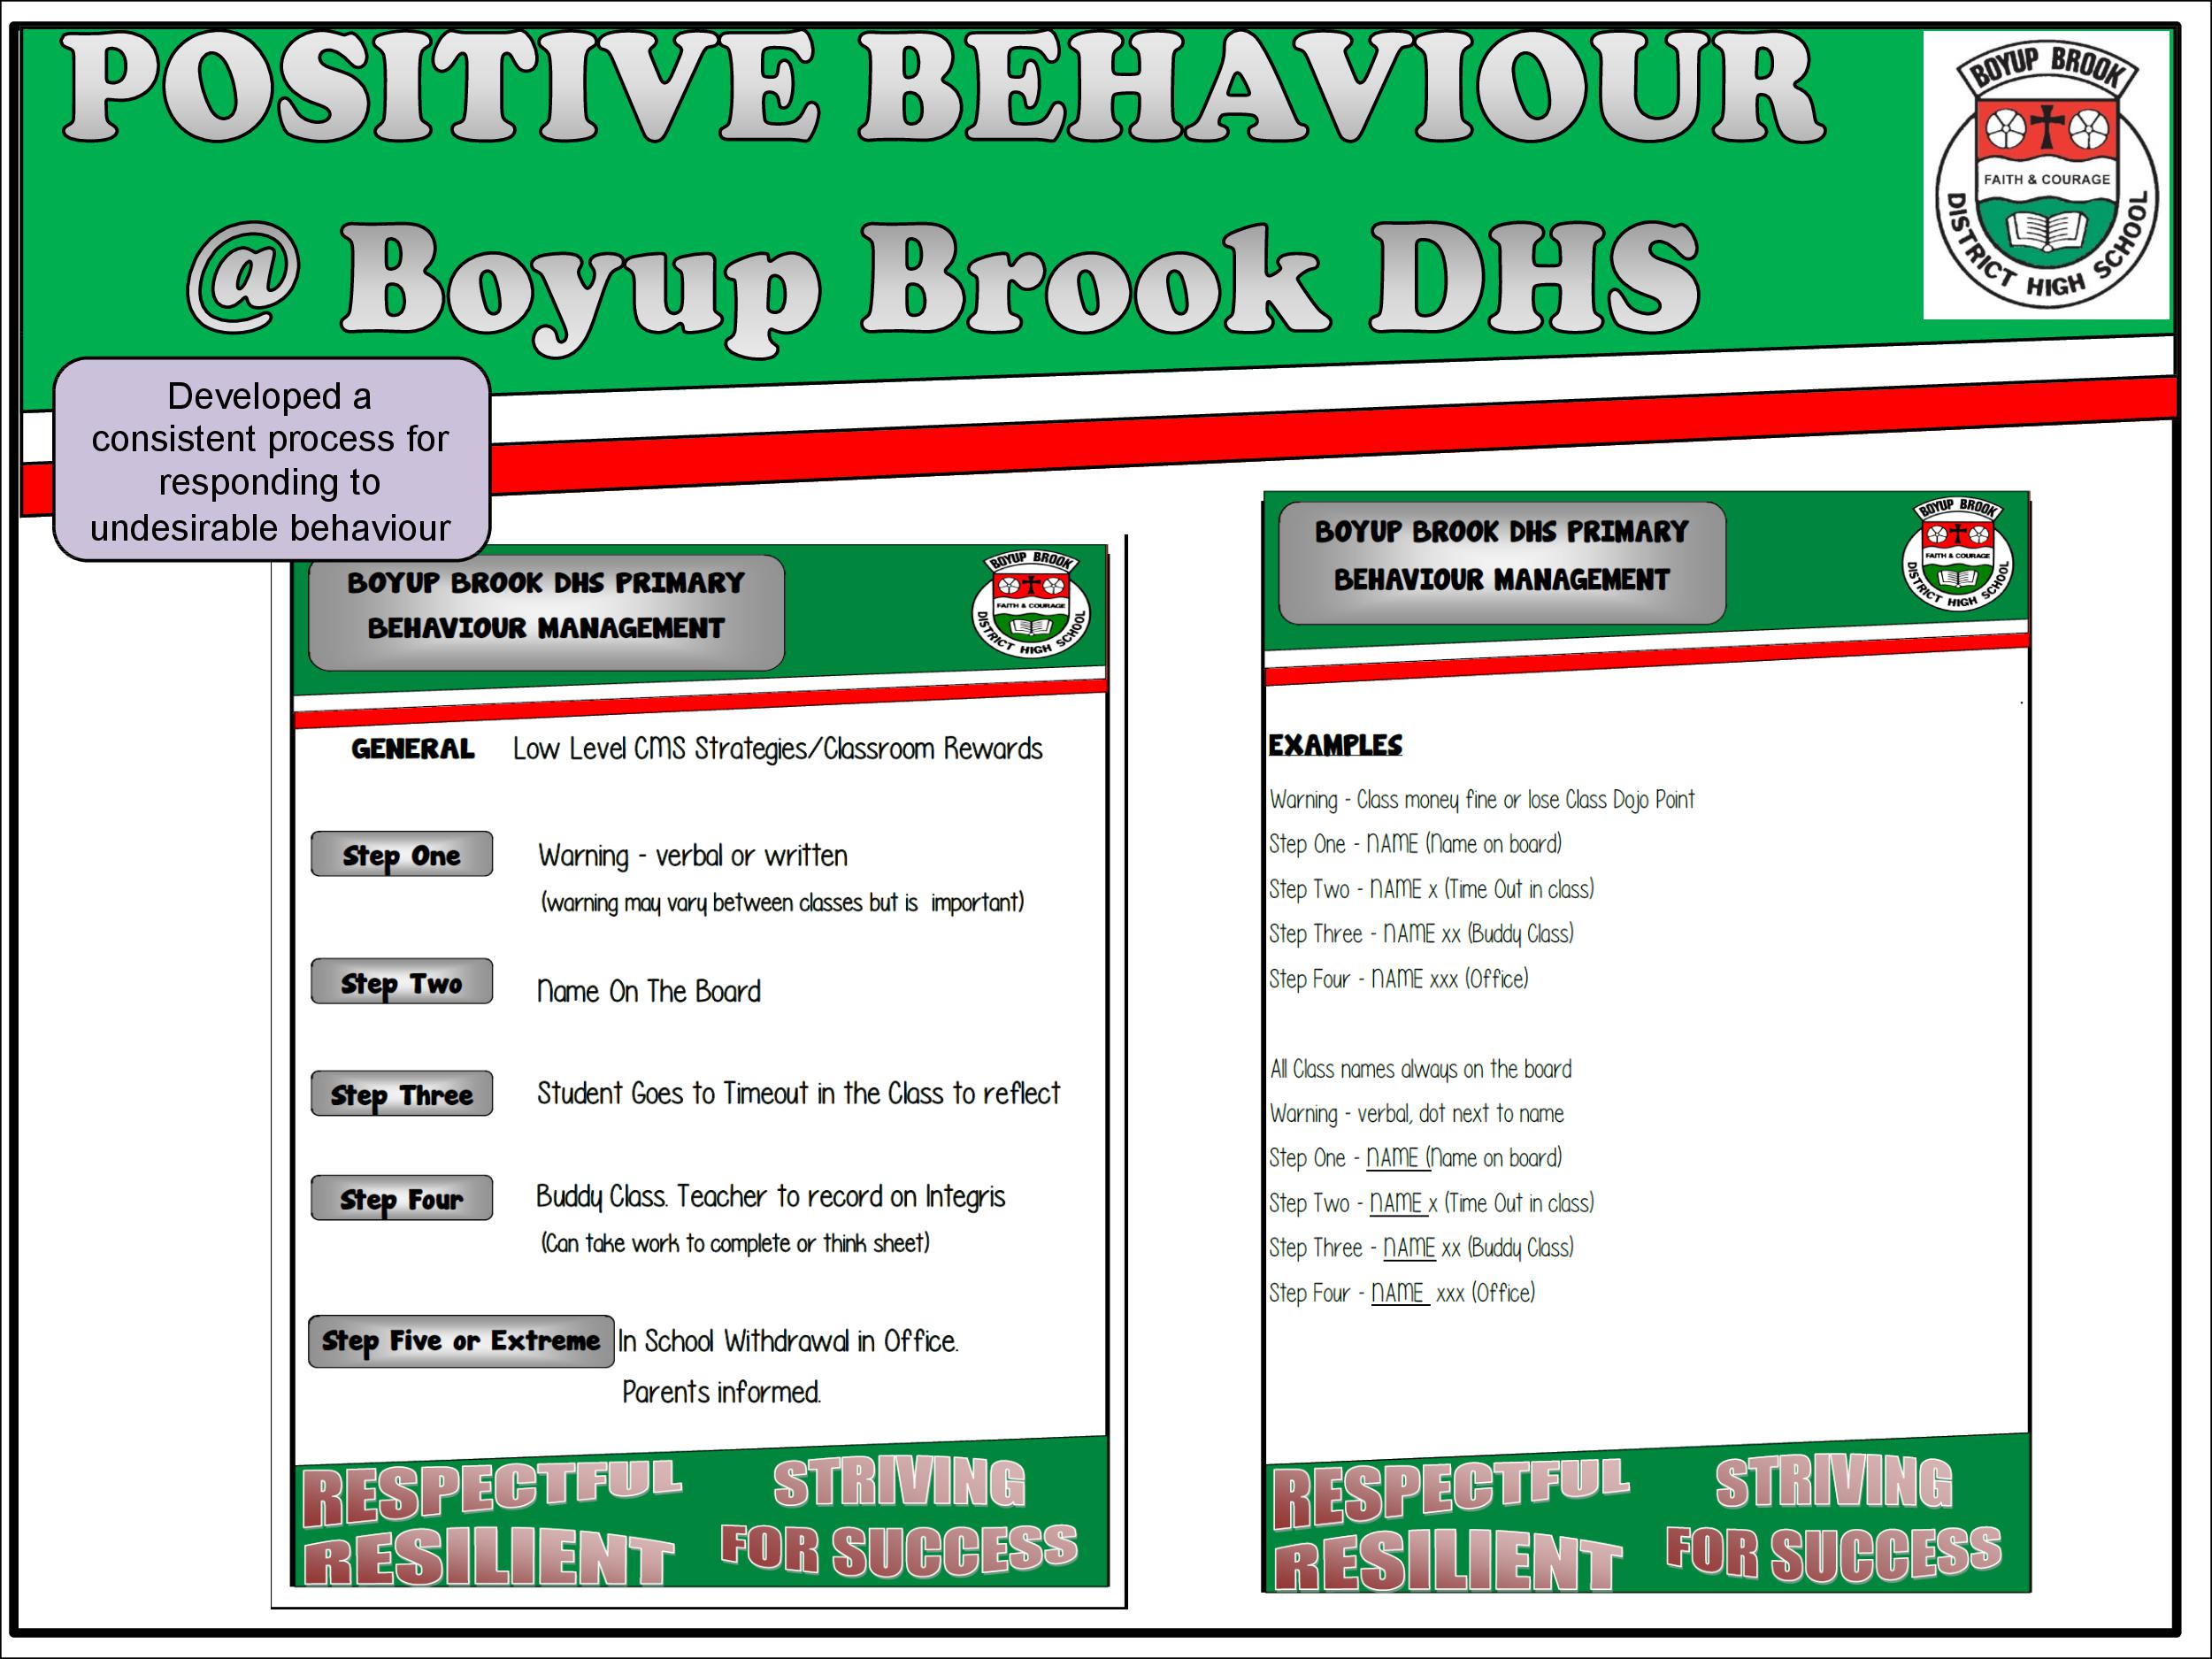 Positive Behaviour Support Page 19